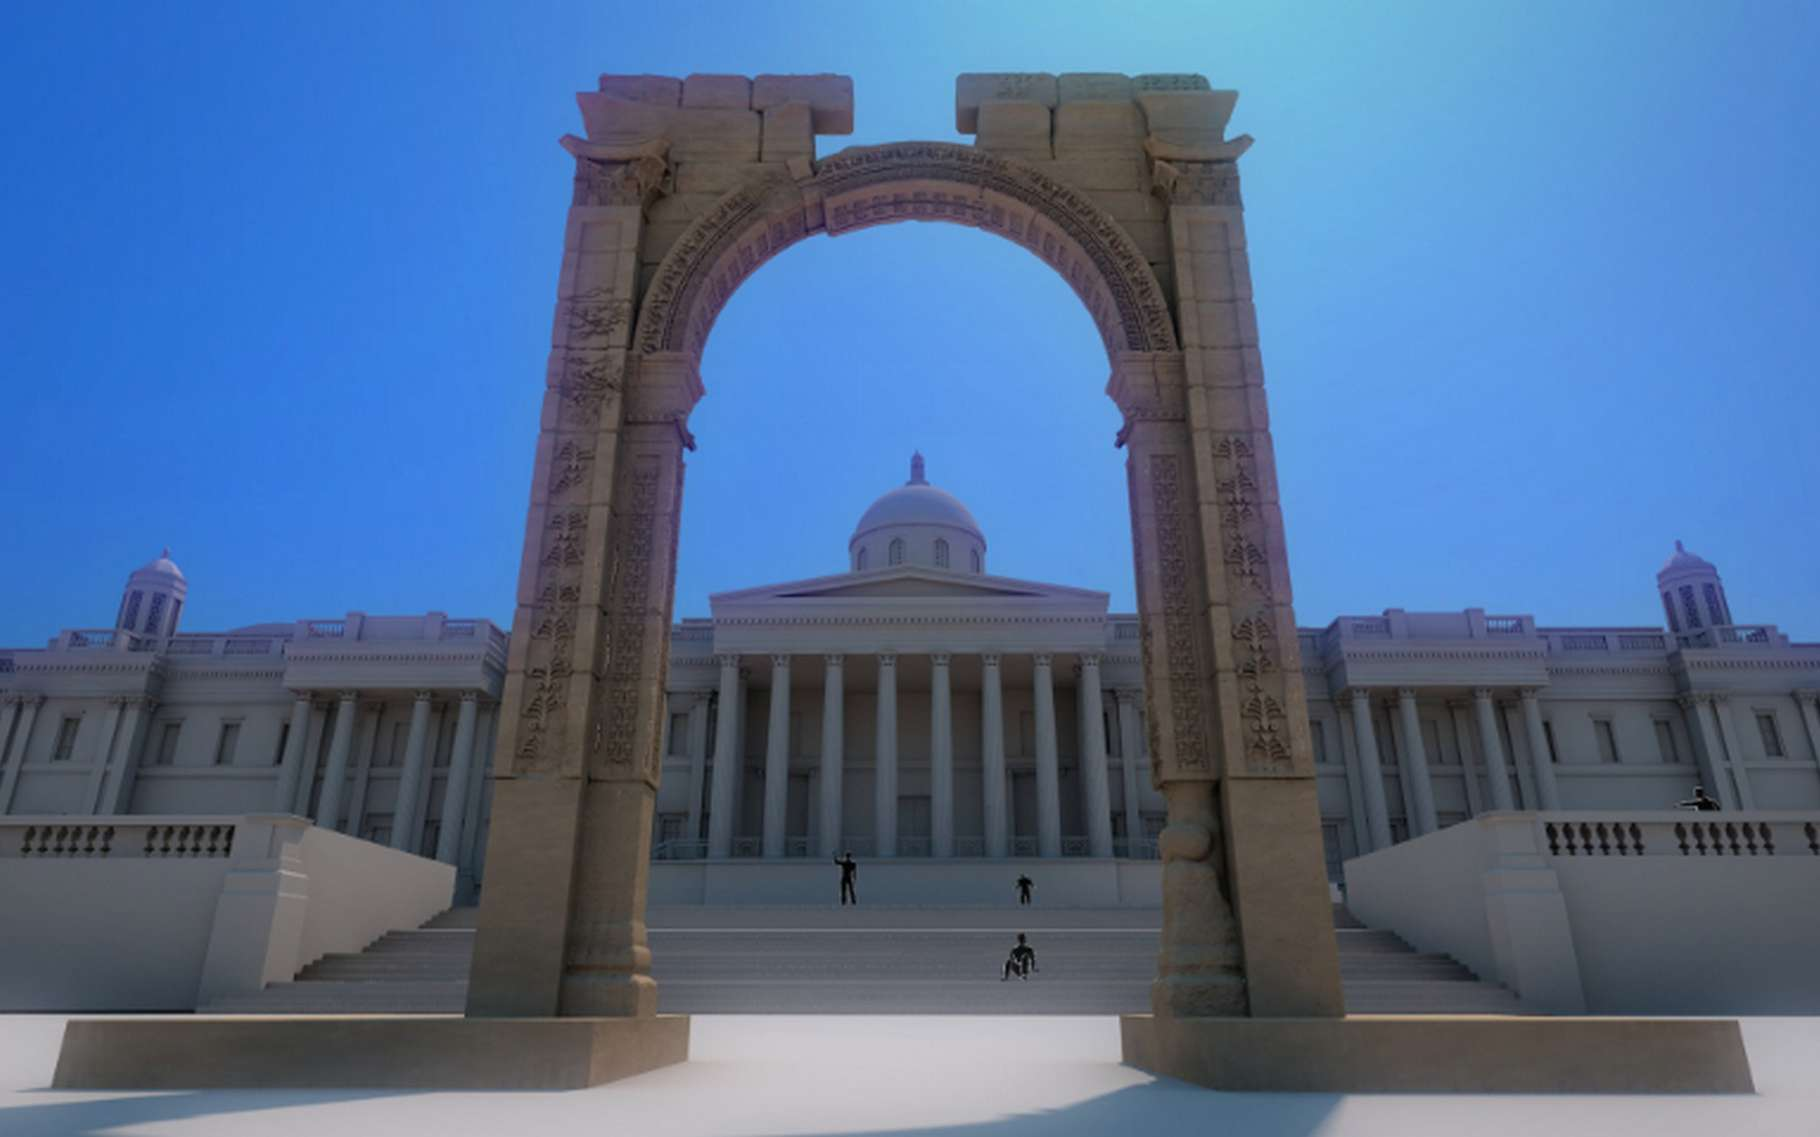 Voici la reproduction à l'échelle deux tiers de l'arc de triomphe de Palmyre. Avant la destruction de l'édifice original par les séides de Daech, des volontaires munis d'appareils photo 3D fournis par l'Institut d'archéologie numérique, ont pu photographier le site. Ces clichés ont servi de base pour créer une modélisation 3D qui a servi de guide aux robots-sculpteurs. © Institute for Digital Archaeology